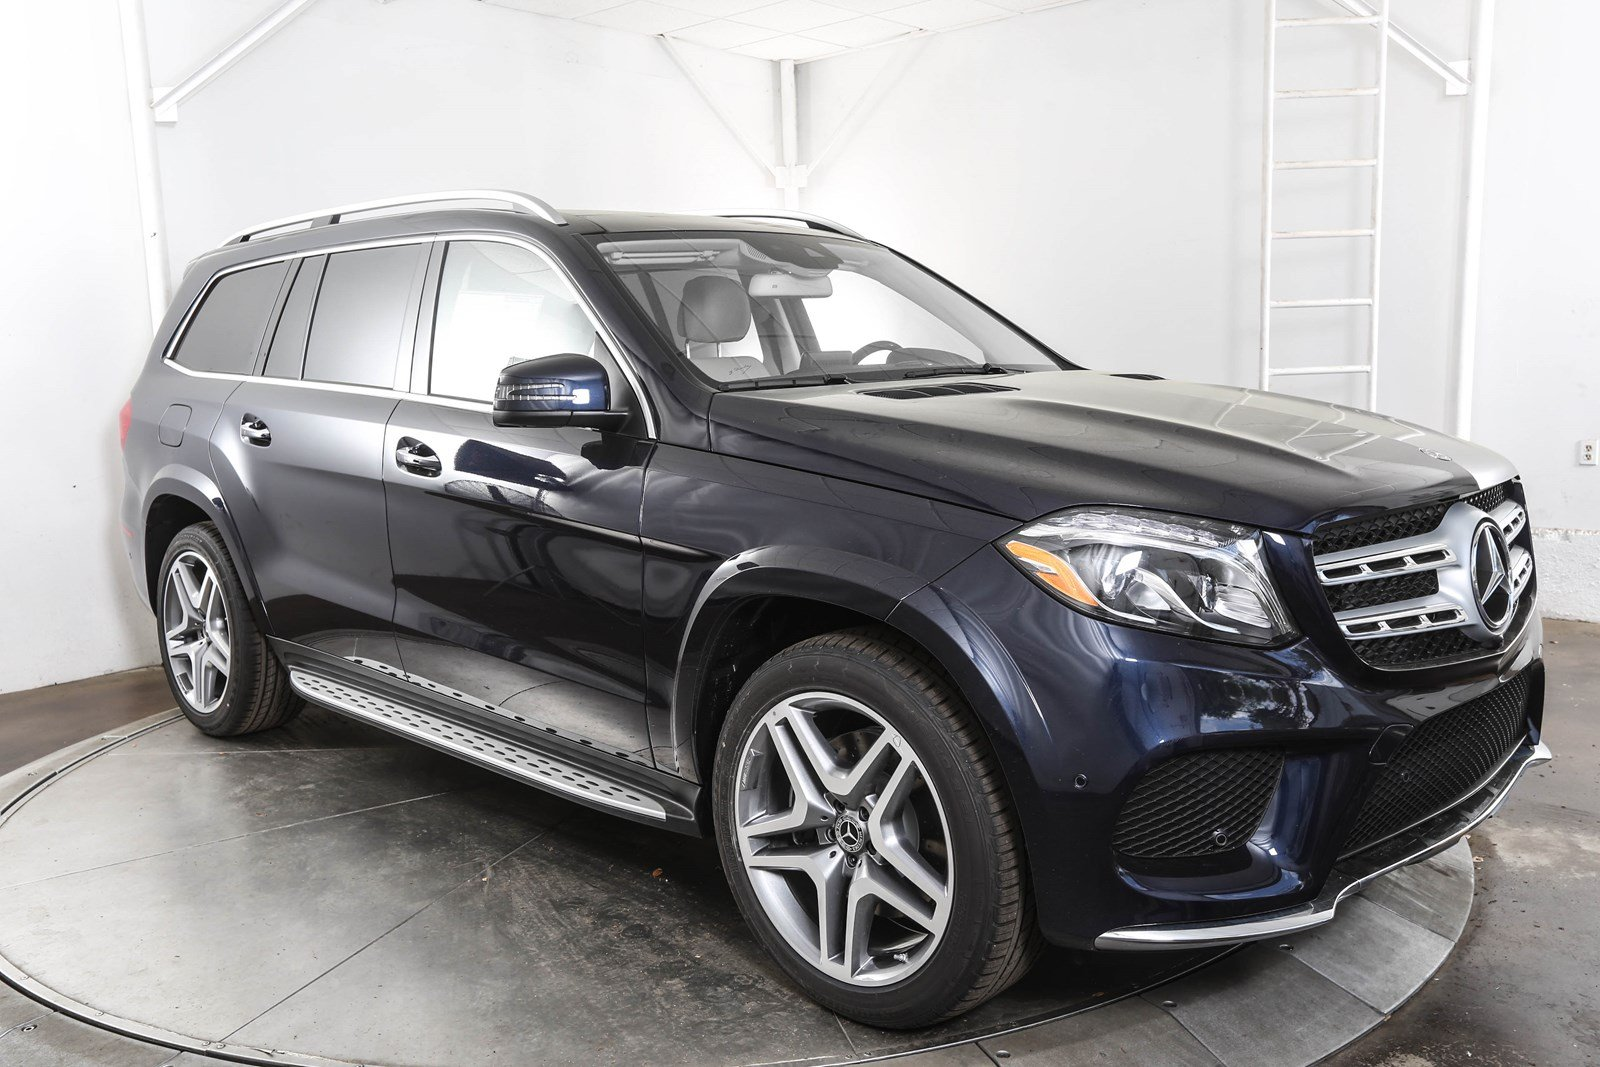 New 2018 mercedes benz gls gls 550 suv in austin m58434 for Schedule c service mercedes benz